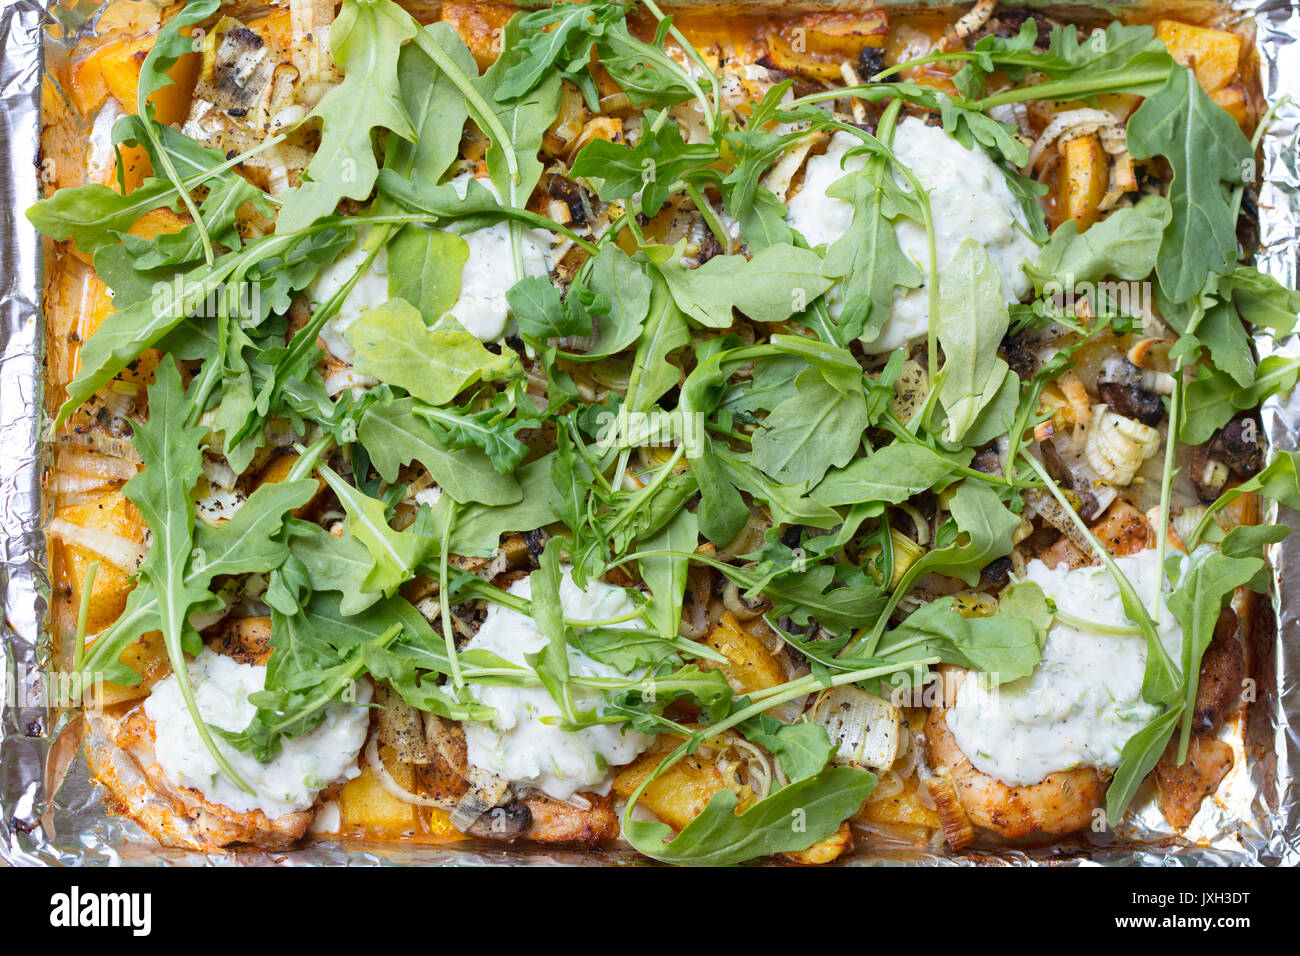 Oven roasted chicken and yukon gold potatoes, leeks, arugula and tzatziki sauce on a baking sheet lined with aluminum foil - Stock Image